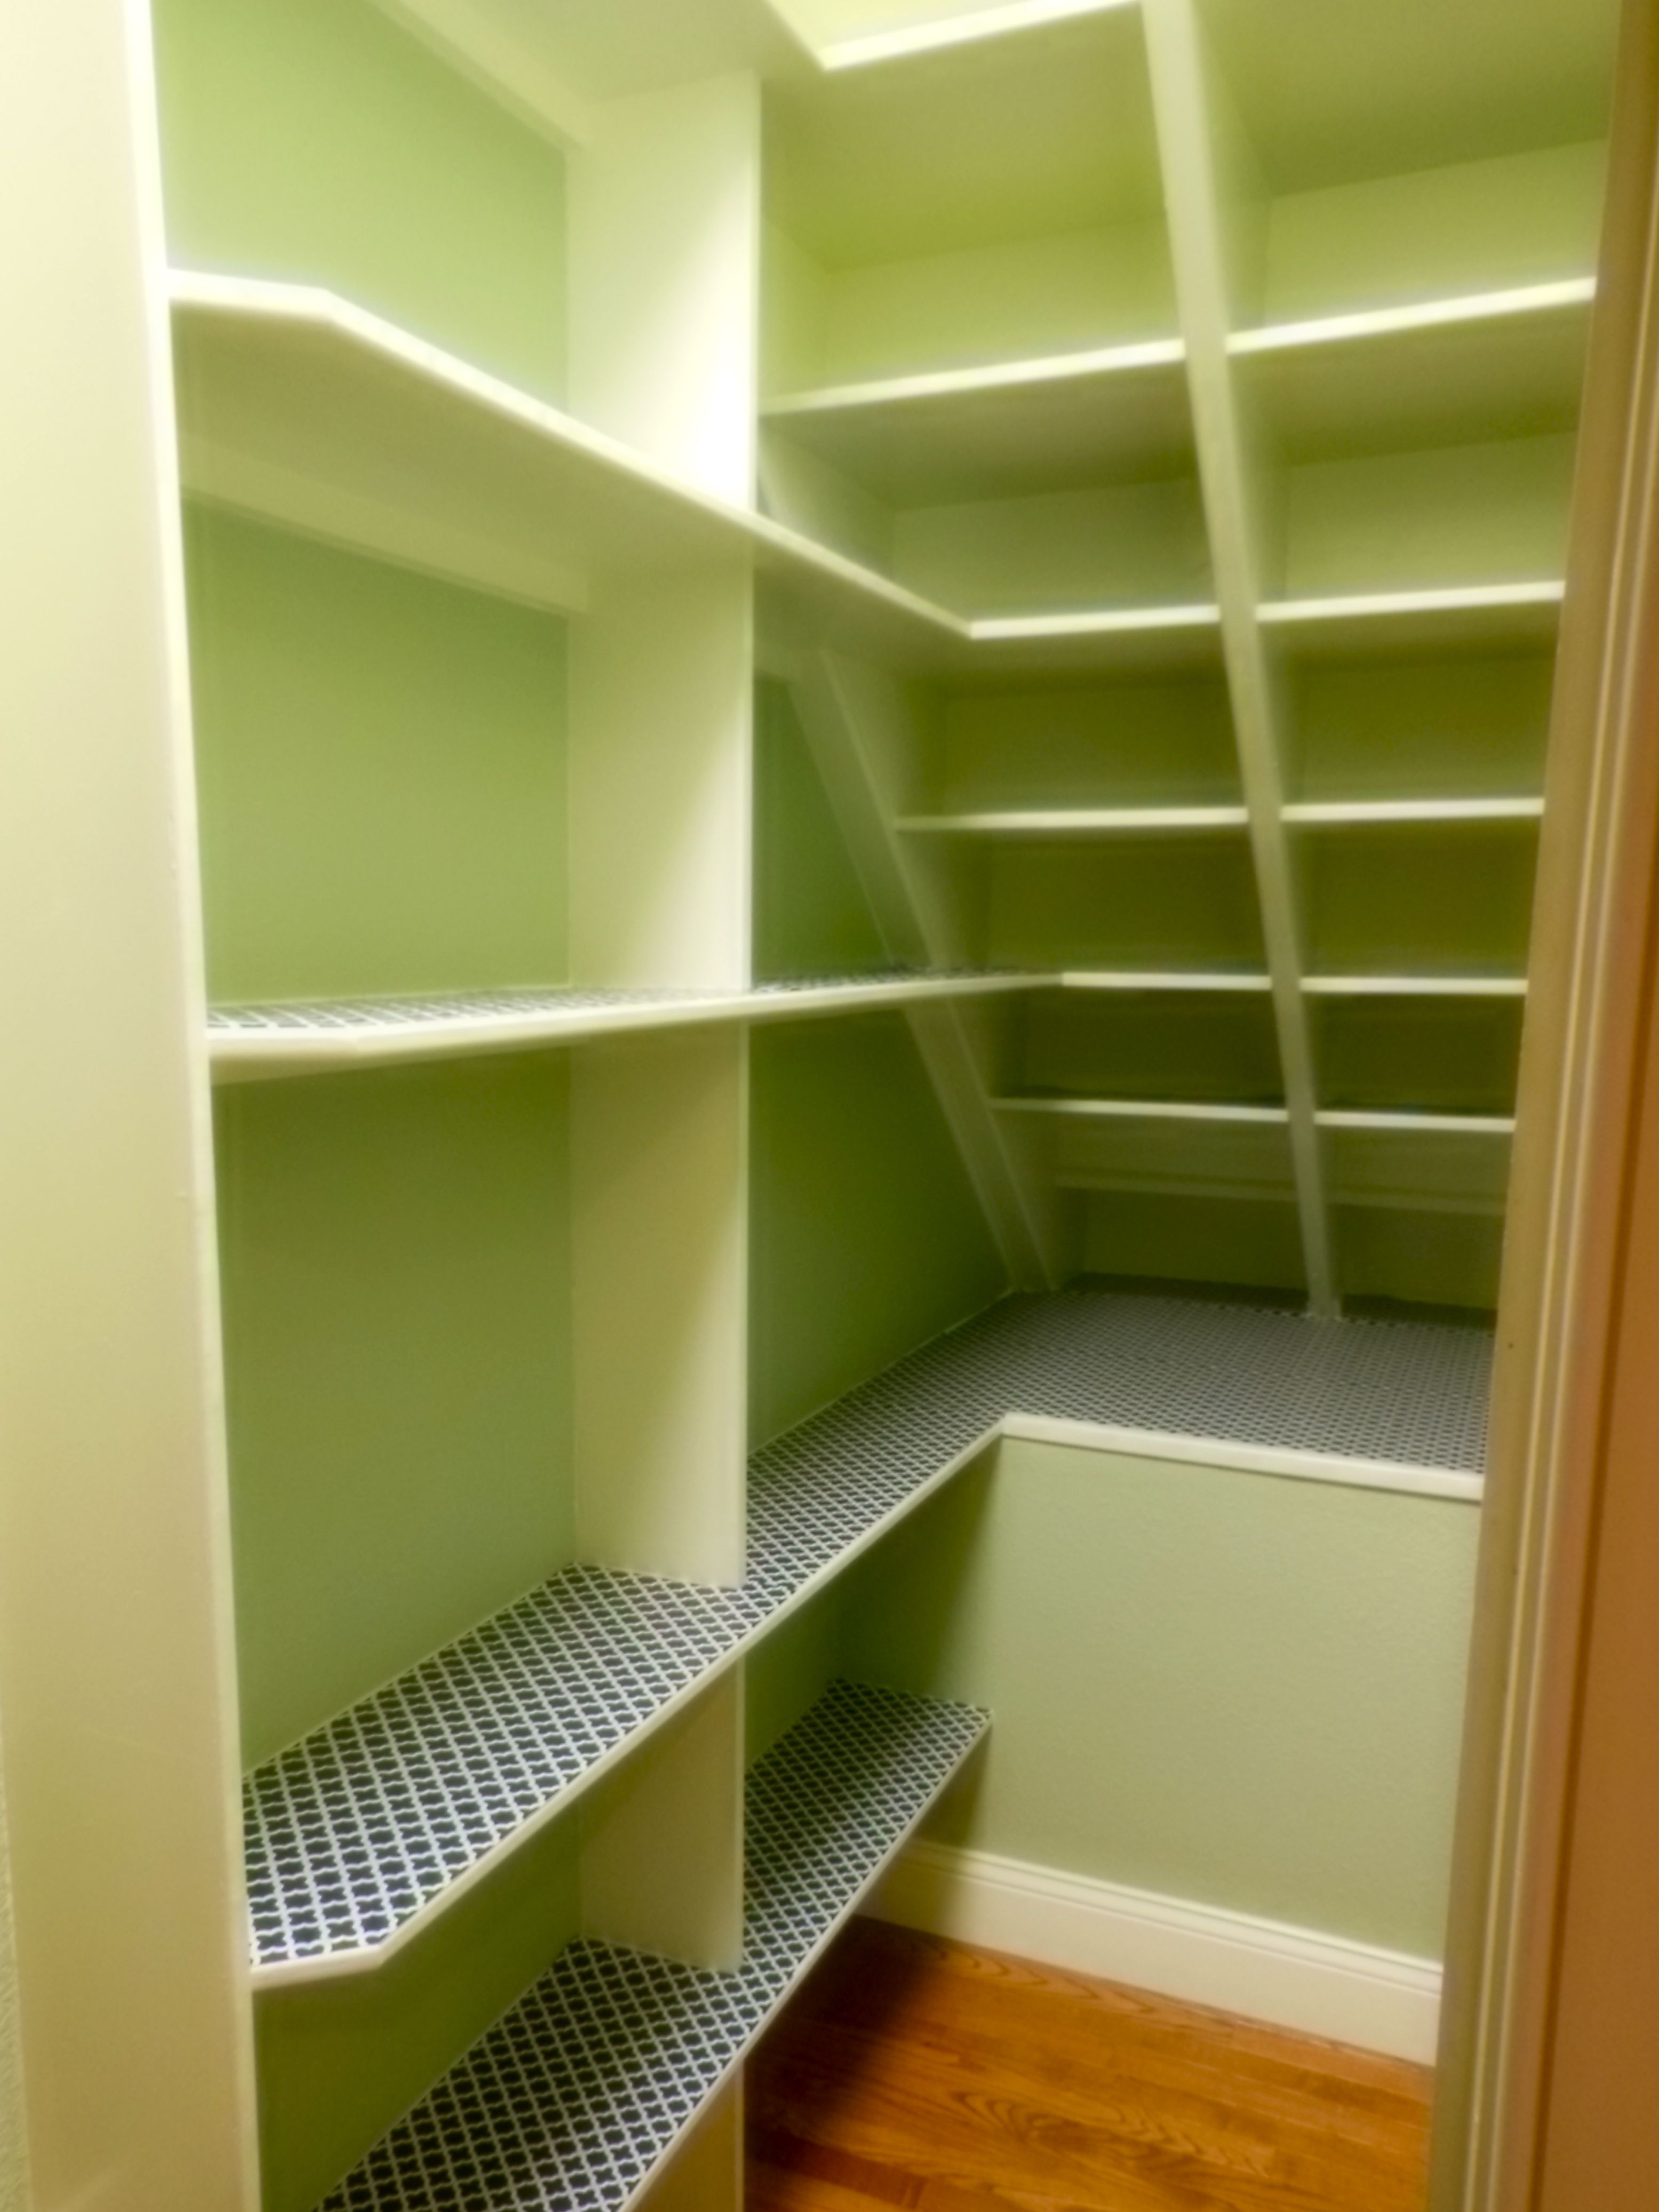 Under The Stairs Storage Ideas Part - 40: My Remodeled Pantry, Under The Stairs . Went From 23 Inches To Almost 11  Feet!